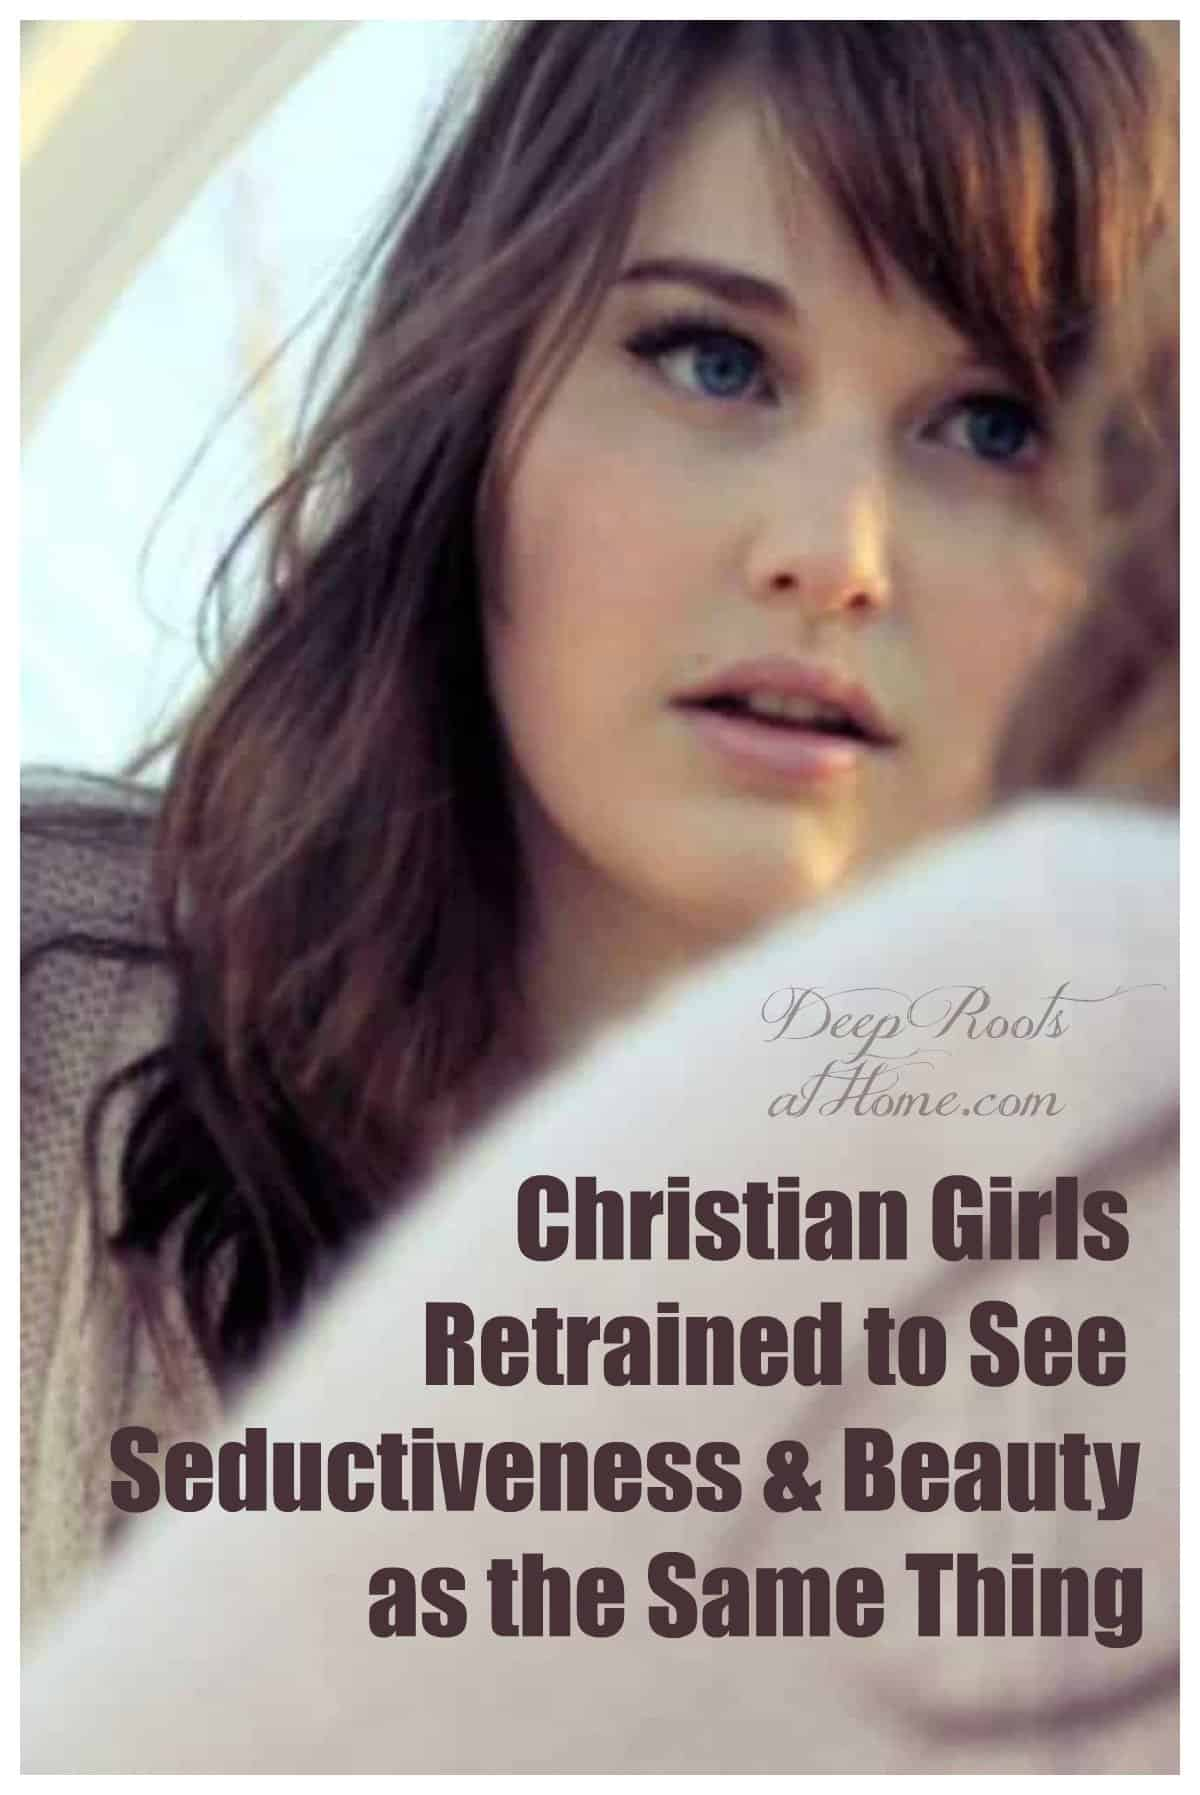 Christian Girls Retrained To See Beauty and Seductiveness As The Same. A young woman looking at herself in the mirror and wondering if she is beautiful or hot